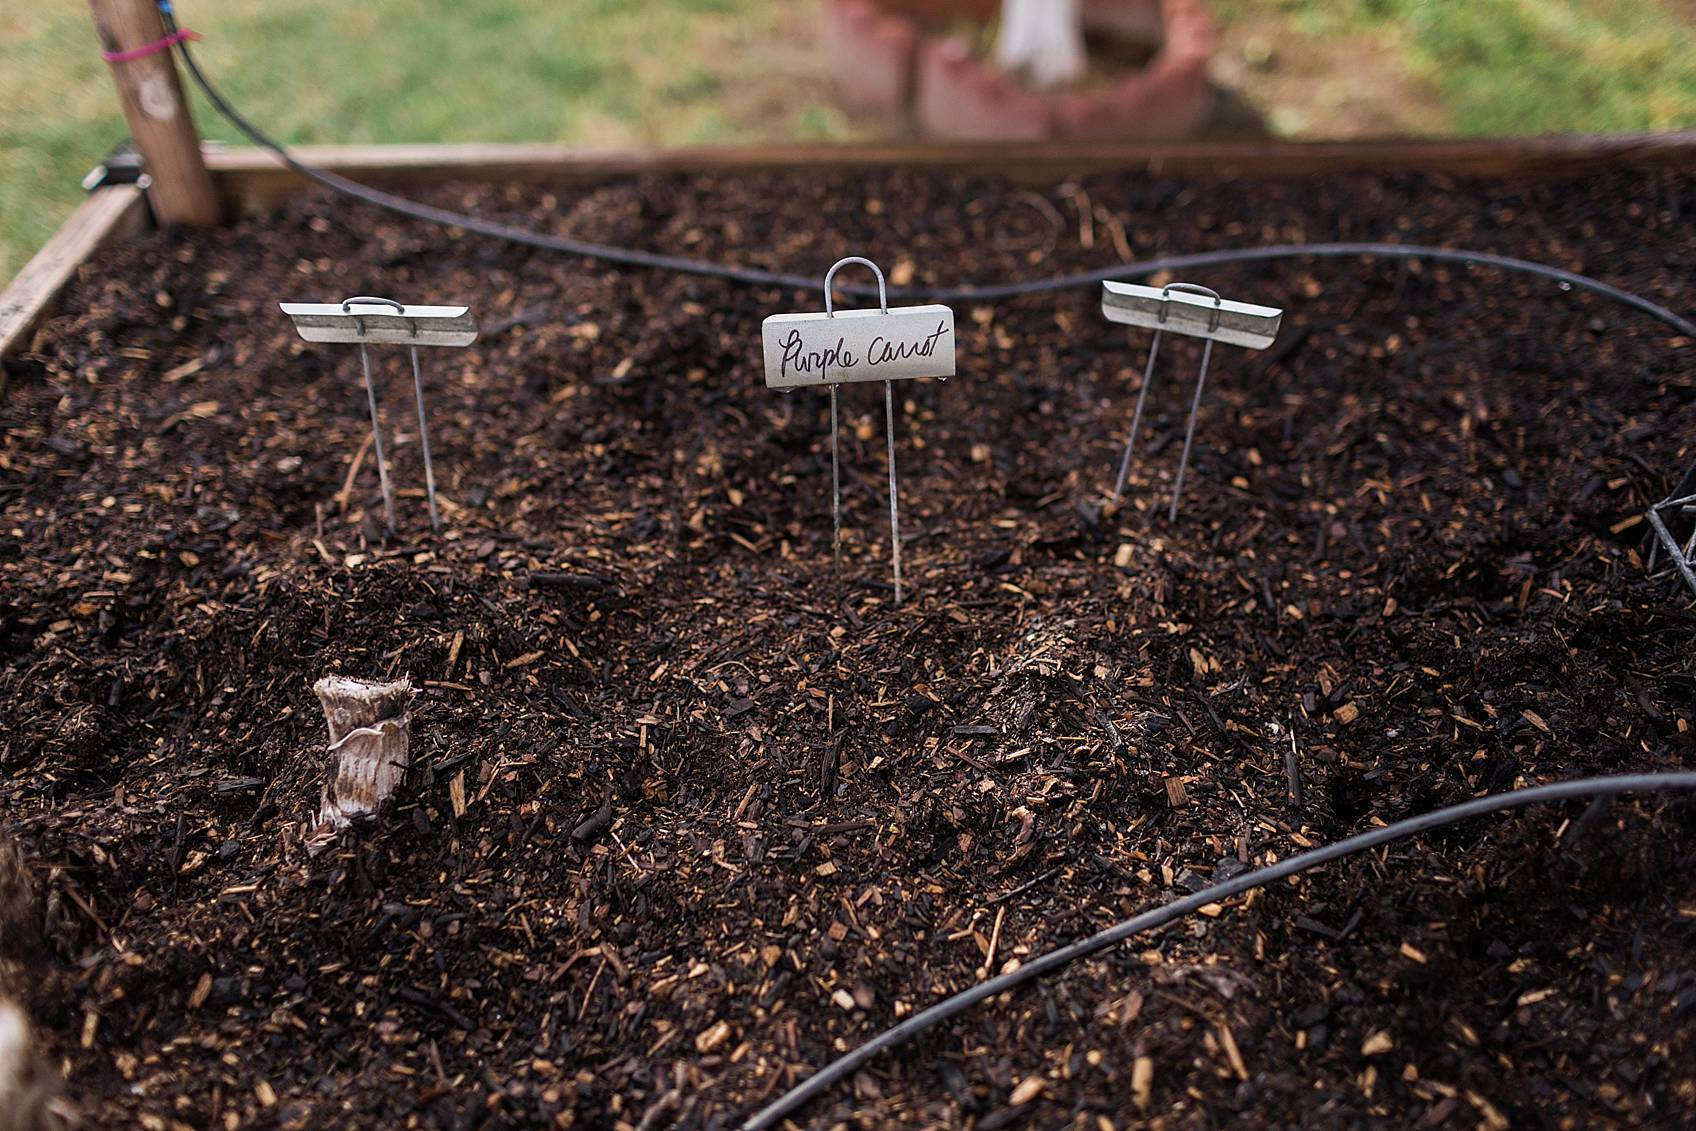 garden labels for seeds so I know what I planted